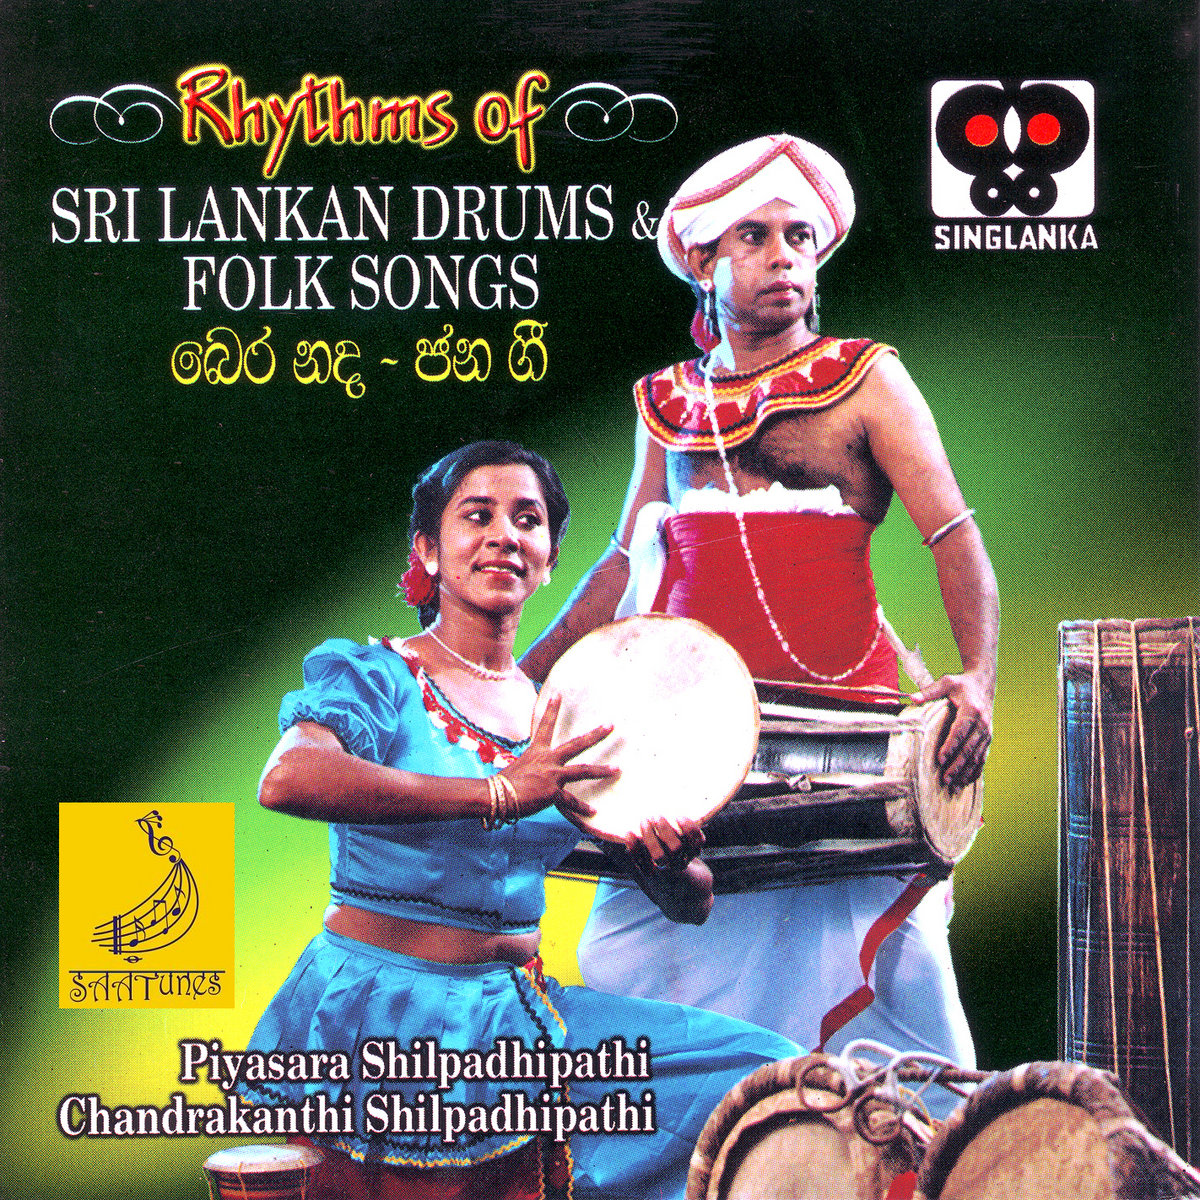 Taki Taki Full Song Downloadbin Mp3: SRI LANKAN FOLK SONGS : Asking For Permission To Sing